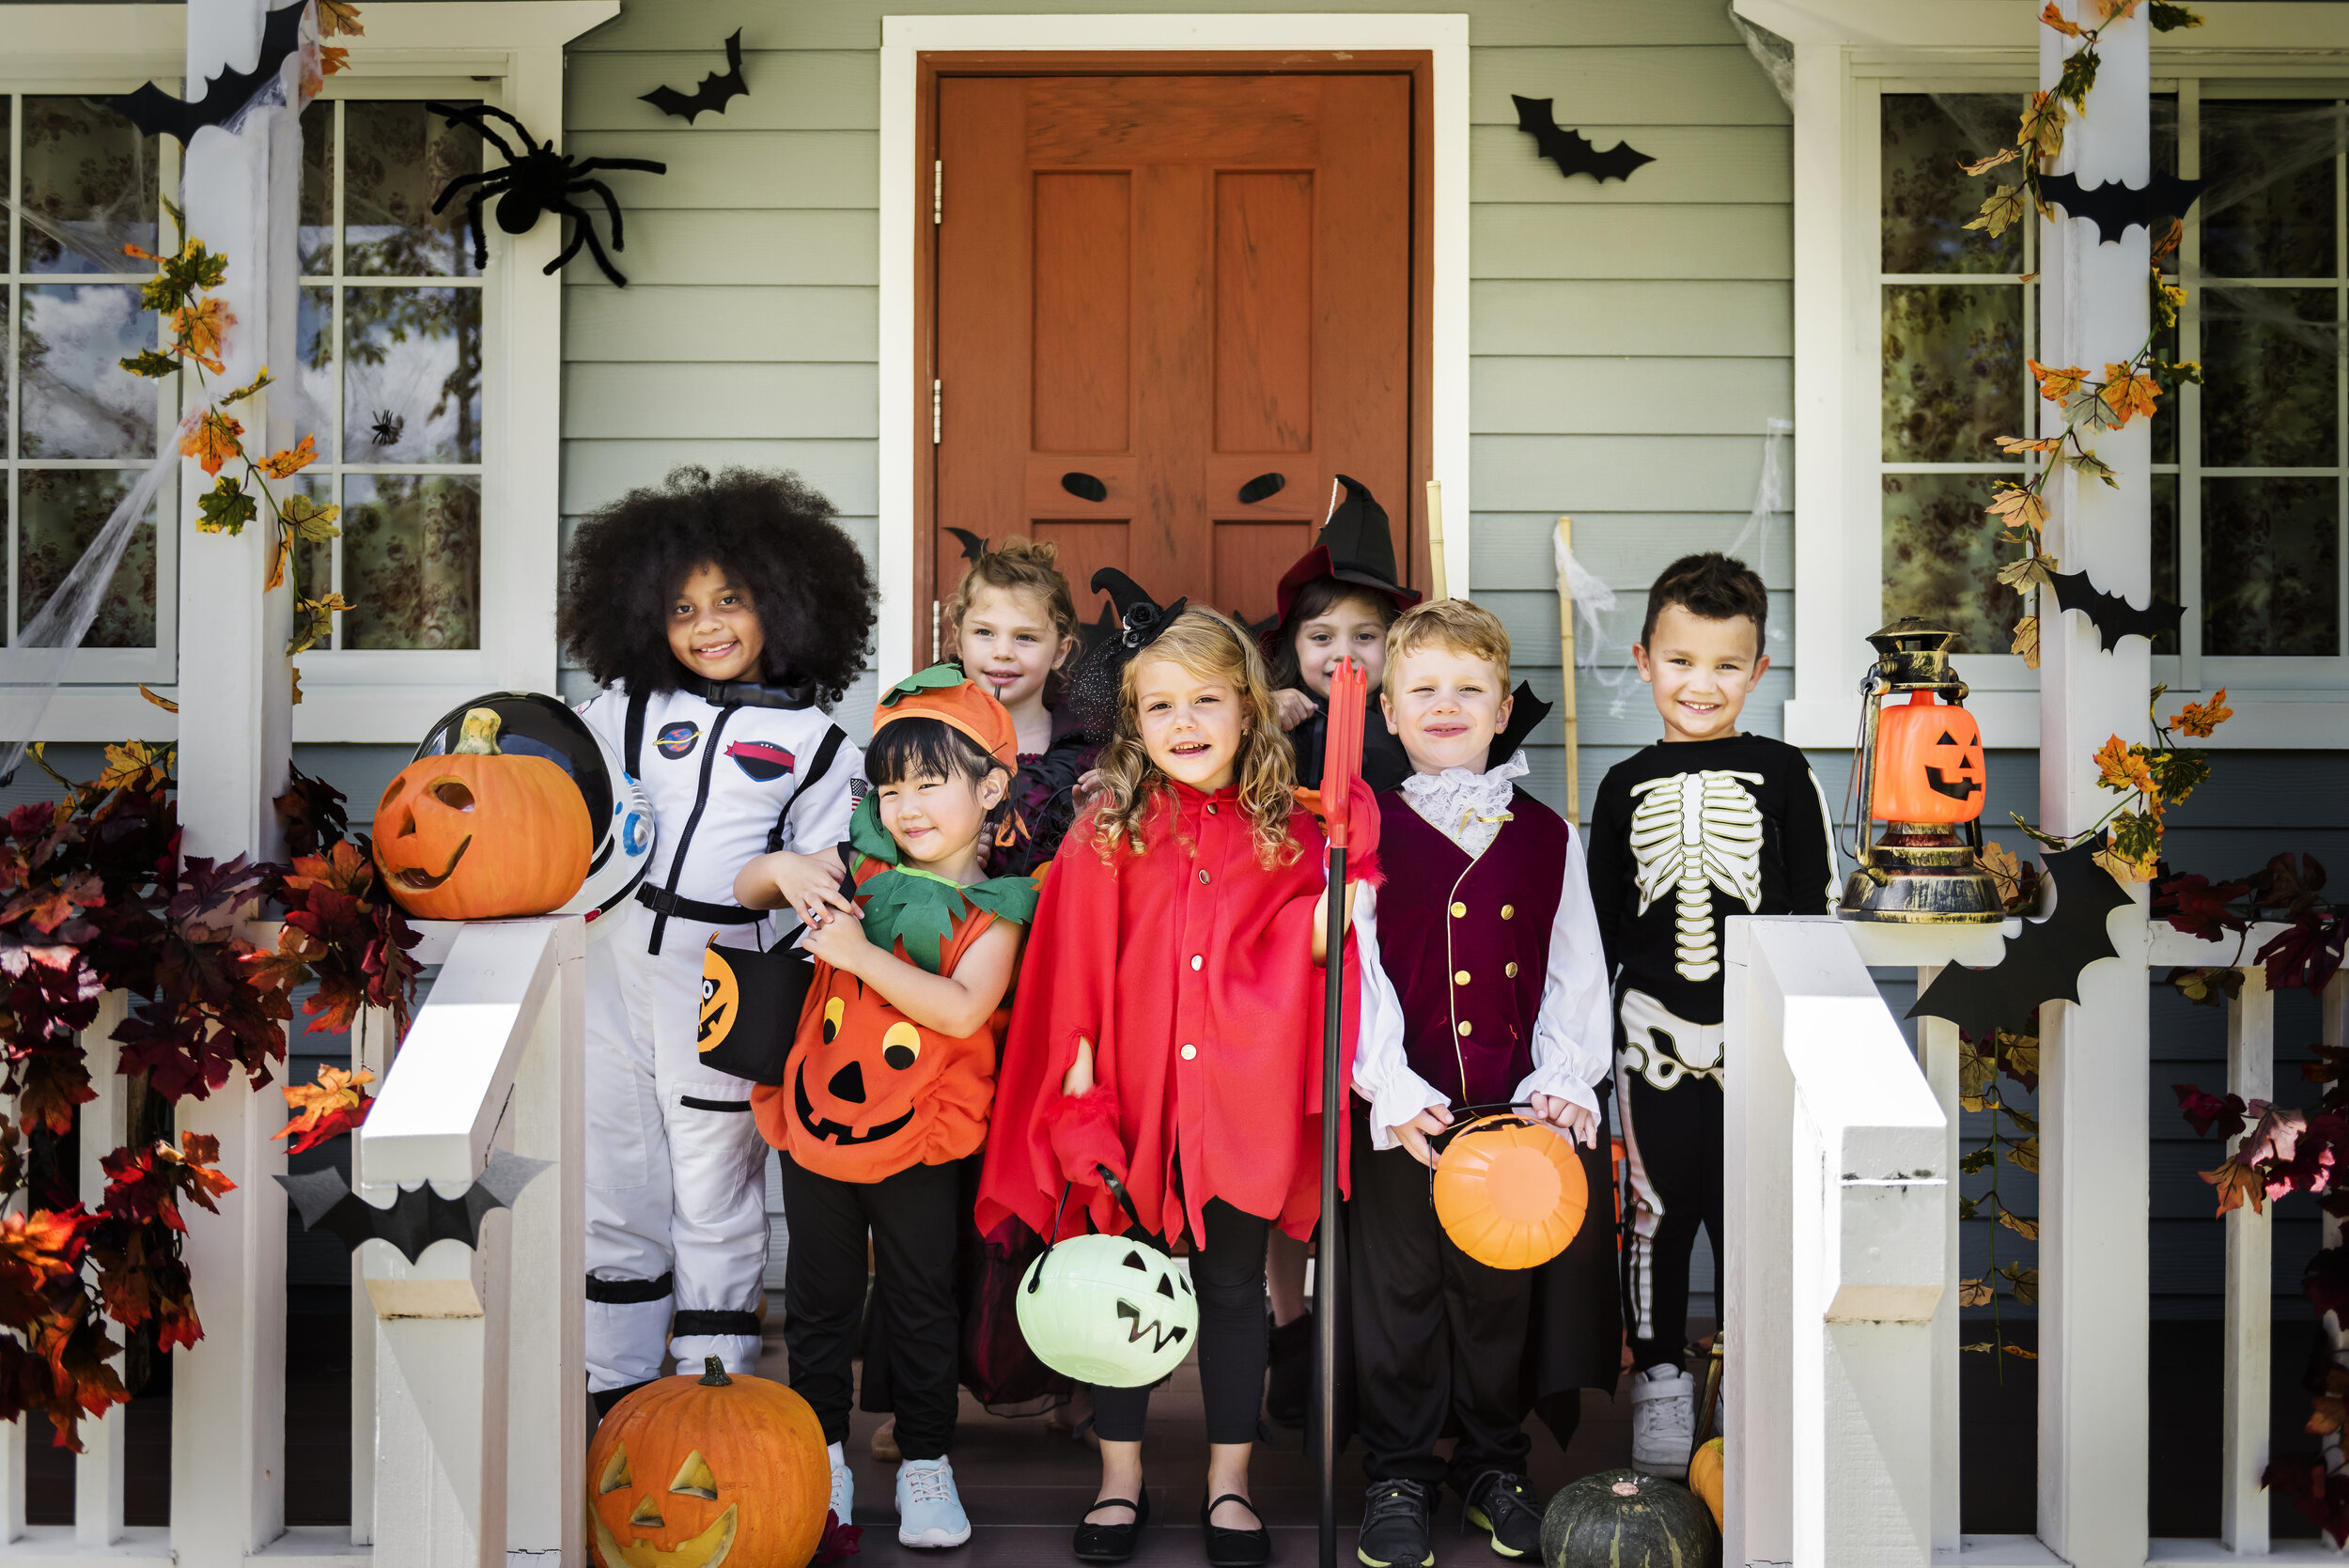 Have a Safe and Happy Halloween! -